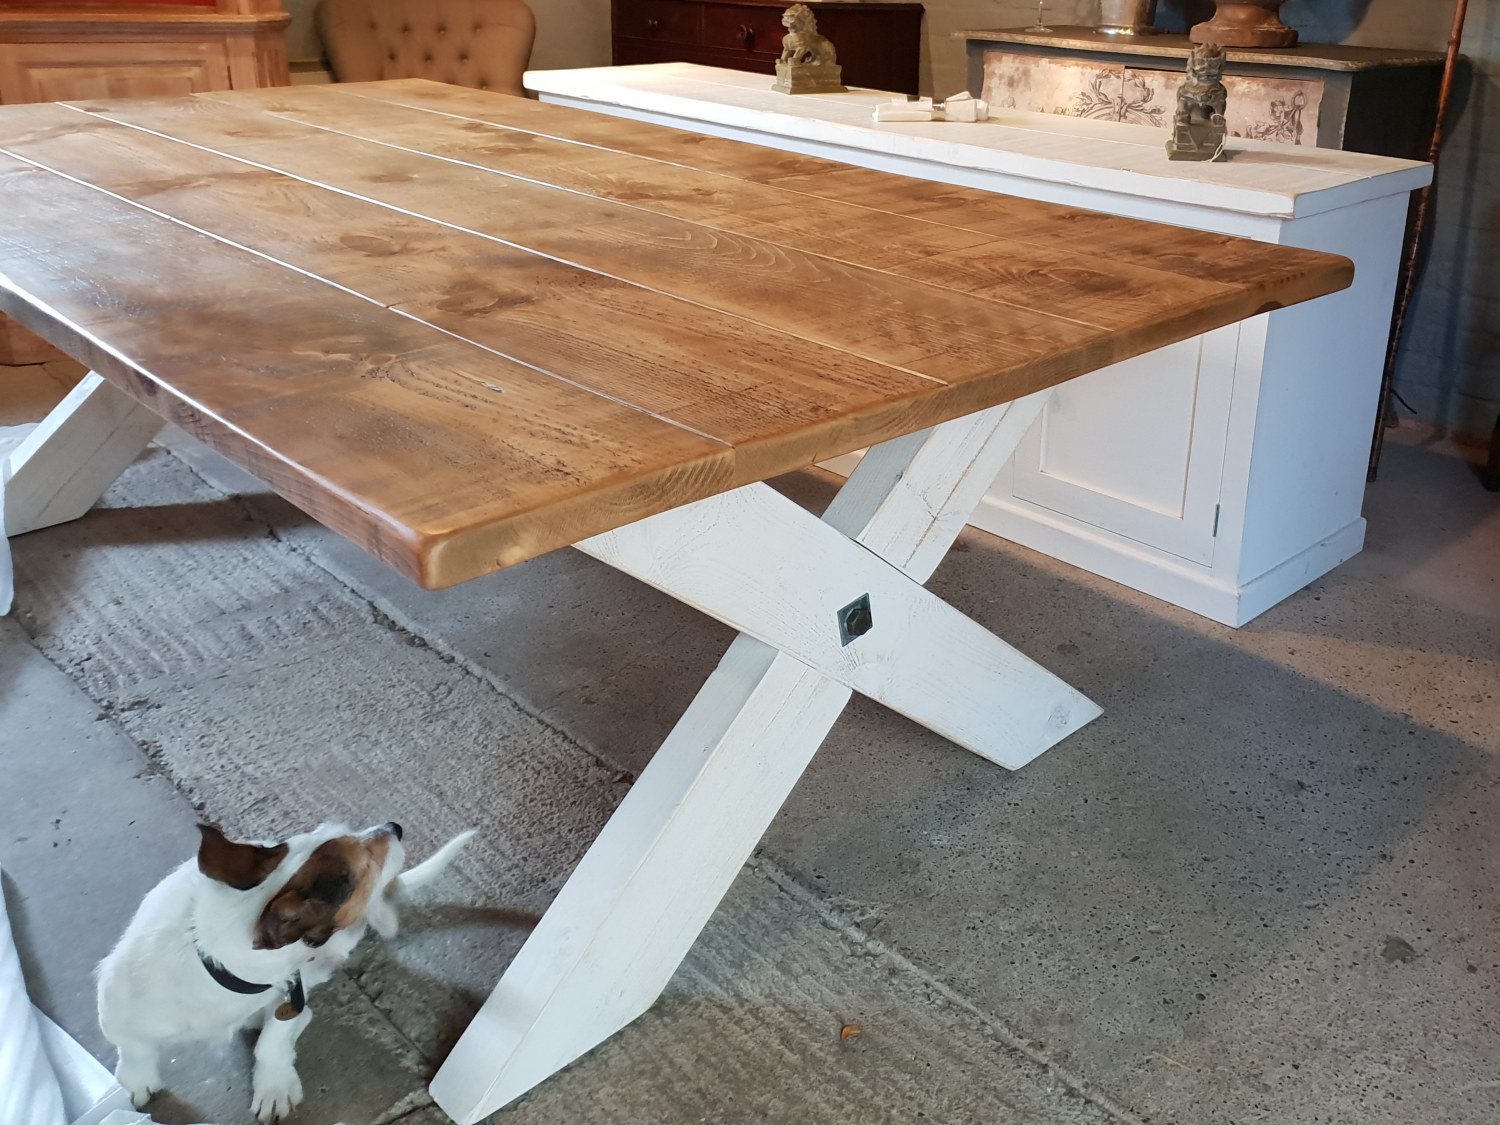 We are delivering this large X frame table to Hampshire today.